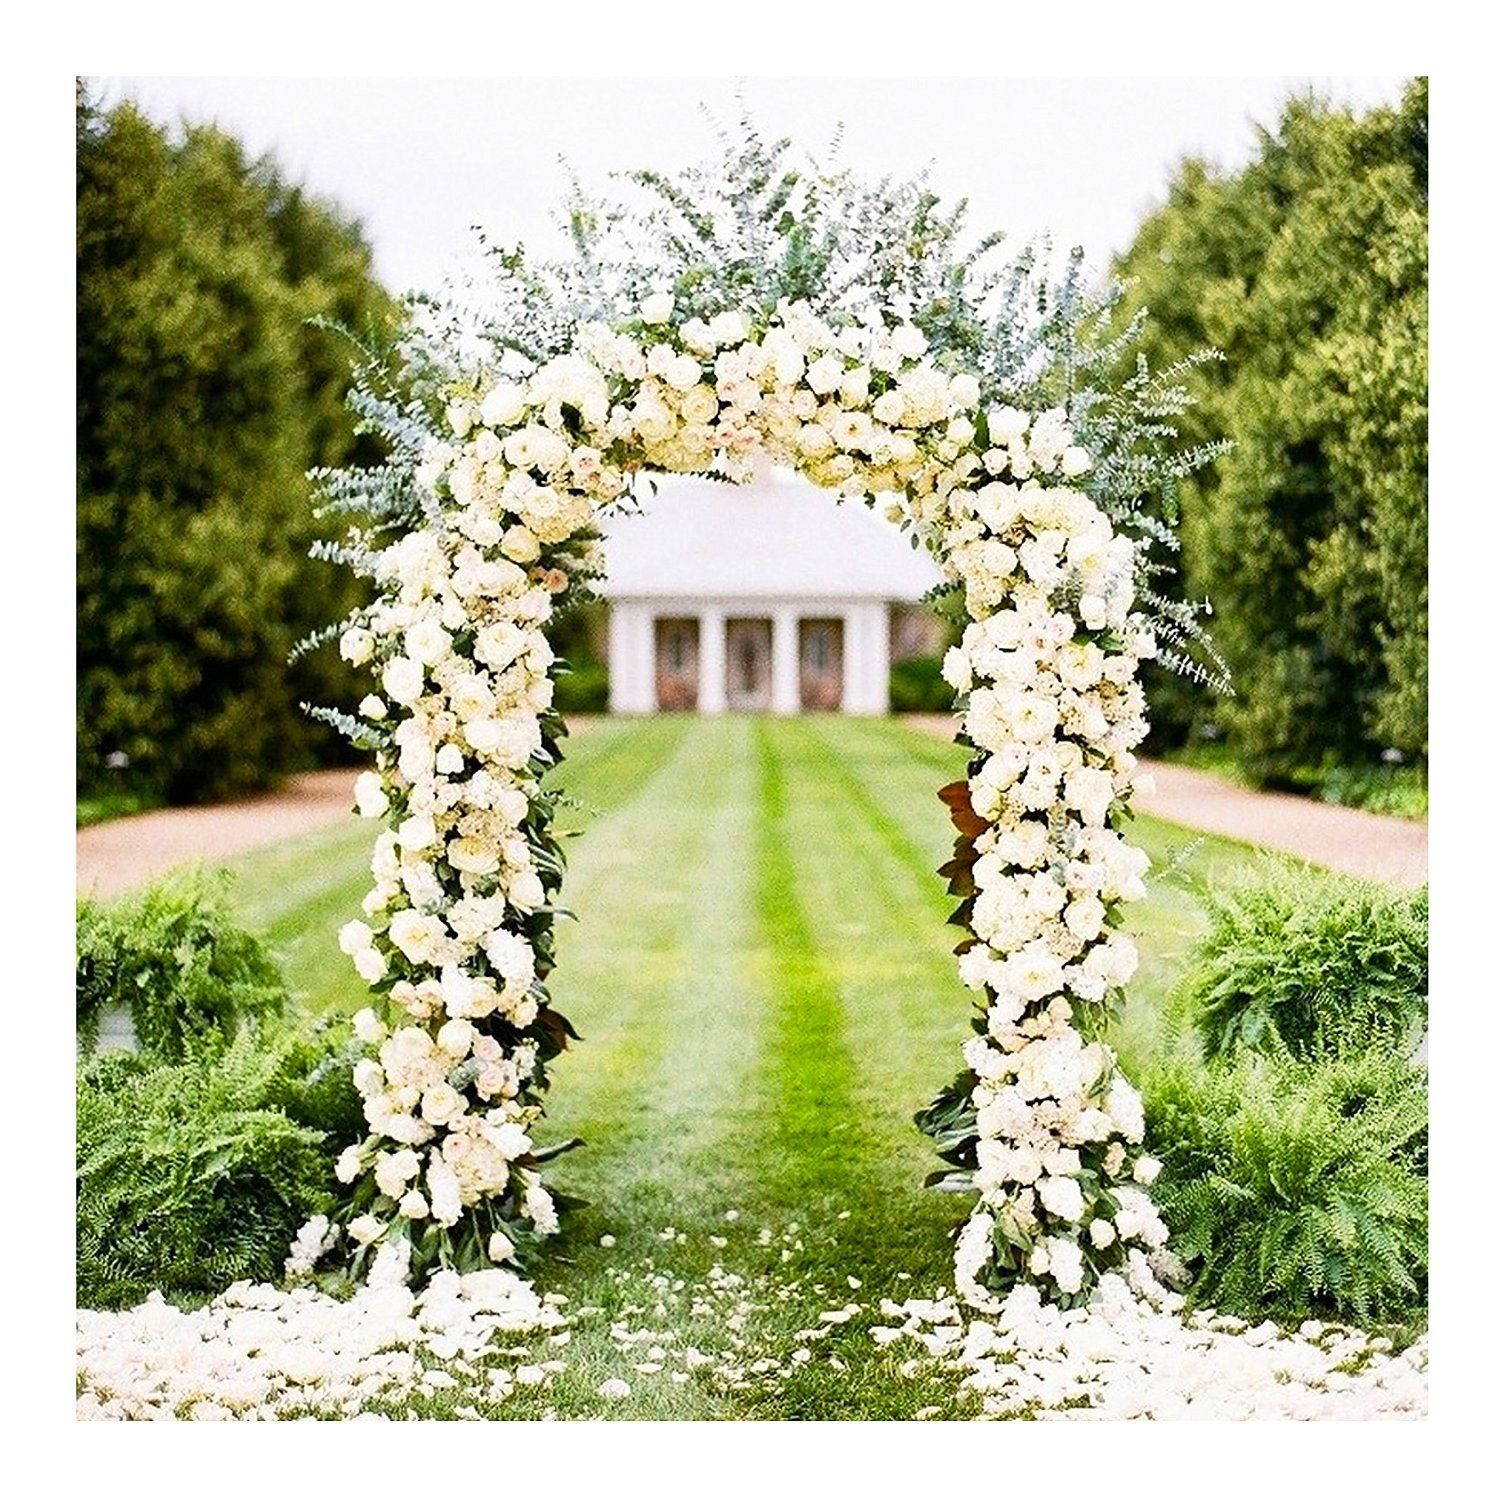 Amazon adorox 75 ft white metal arch wedding garden bridal amazon adorox 75 ft white metal arch wedding garden bridal party decoration arbor junglespirit Choice Image